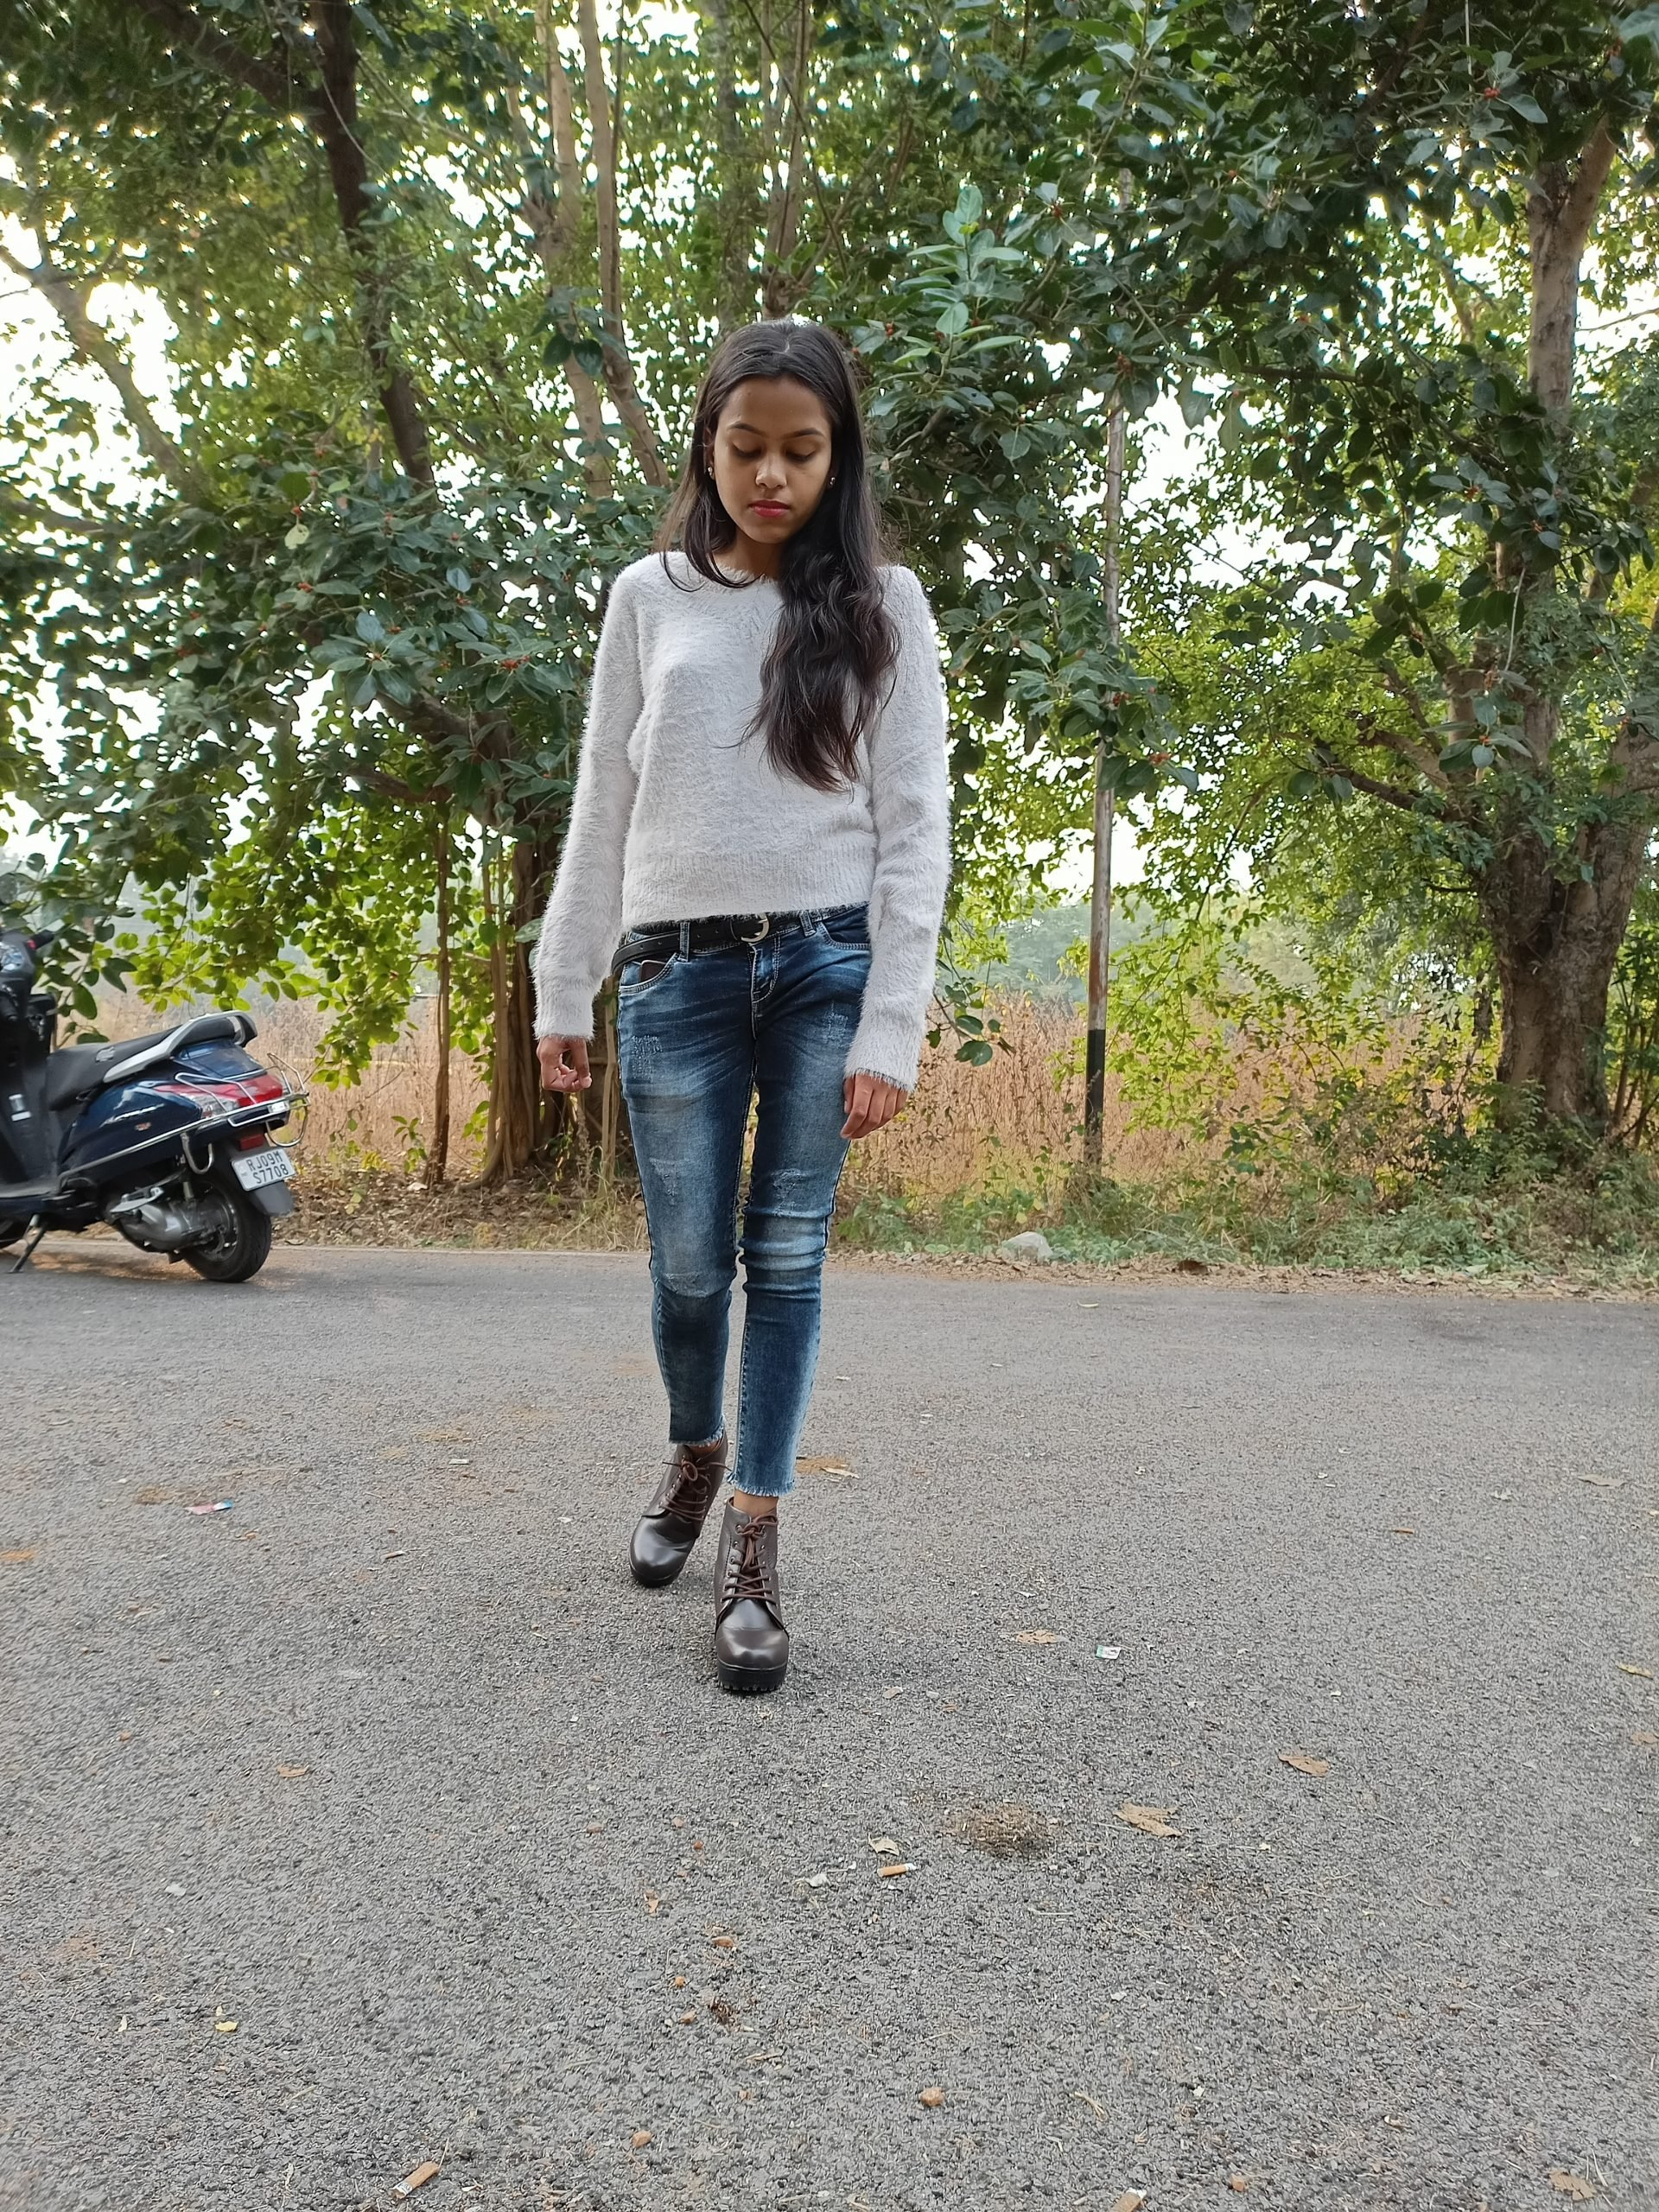 Girl posing on road